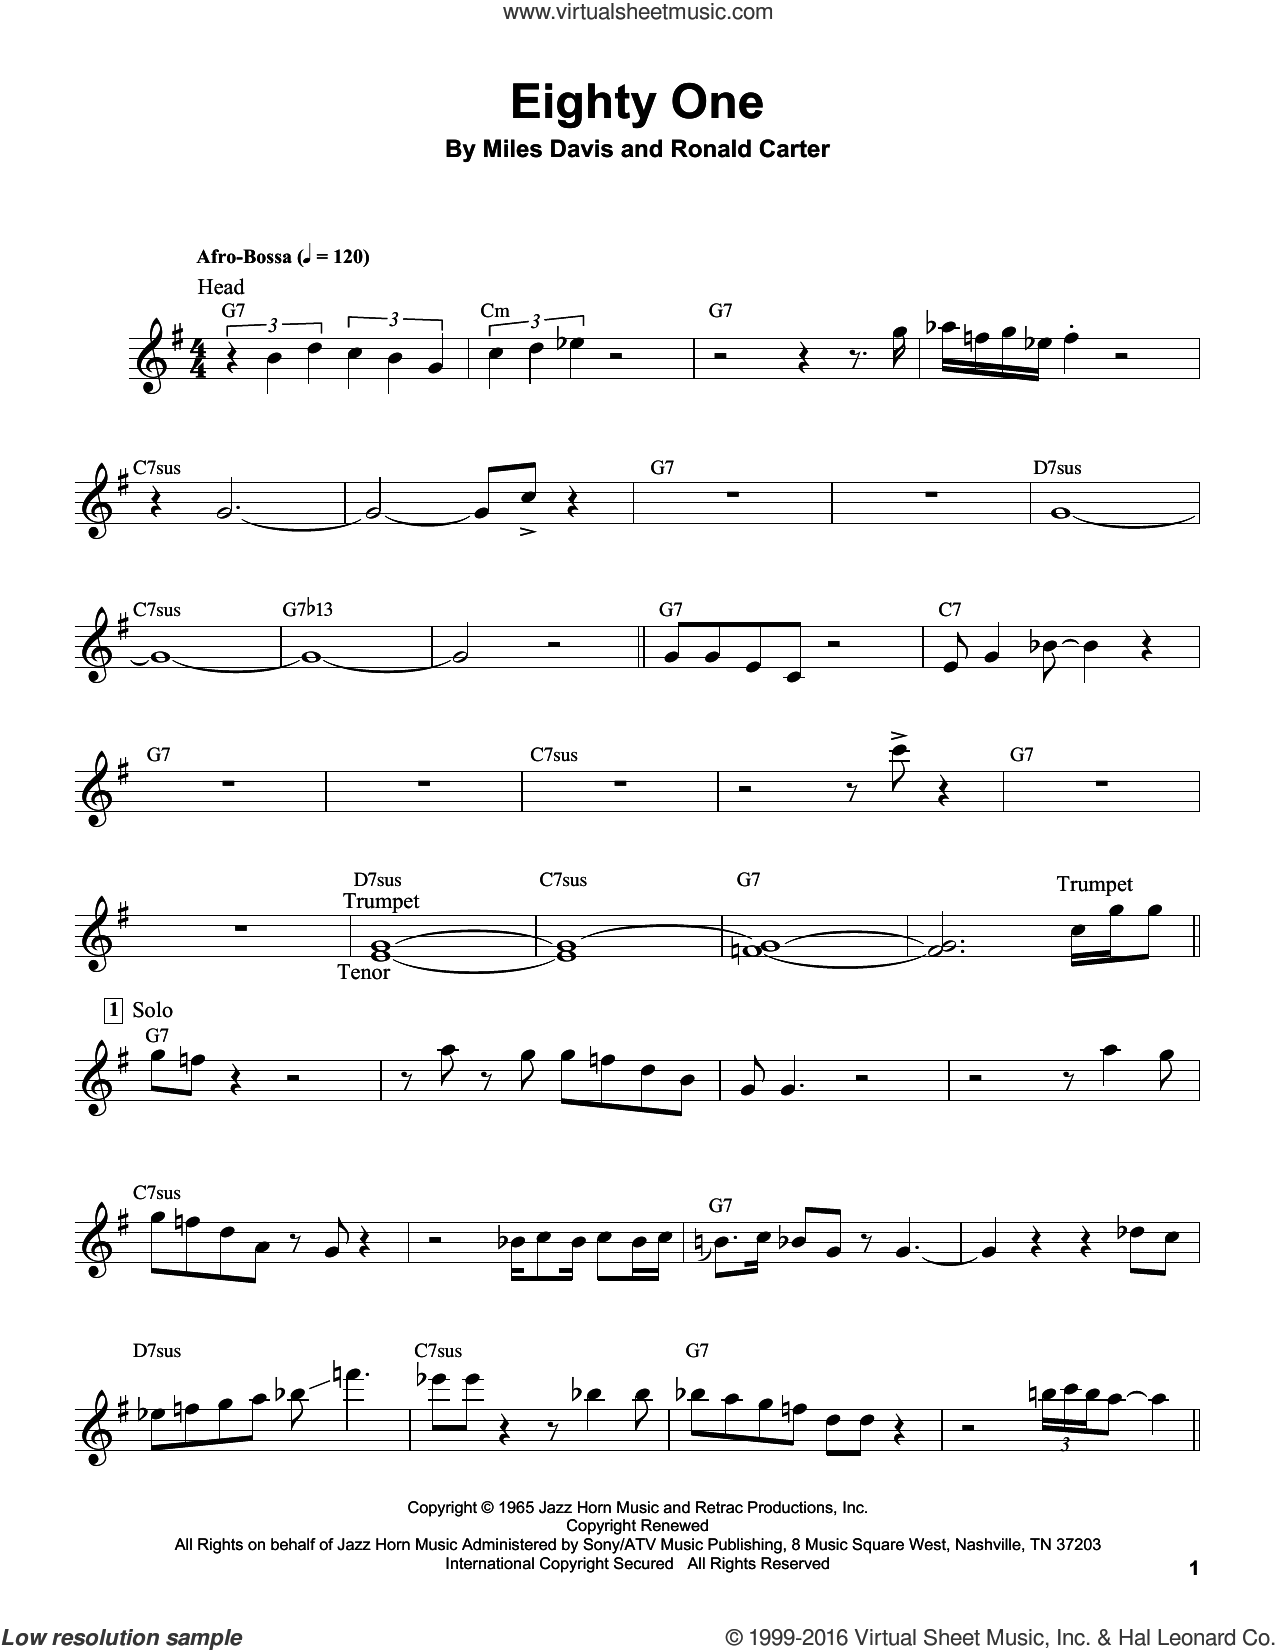 Eighty One sheet music for trumpet solo (transcription) by Miles Davis and Ronald Carter, intermediate trumpet (transcription)